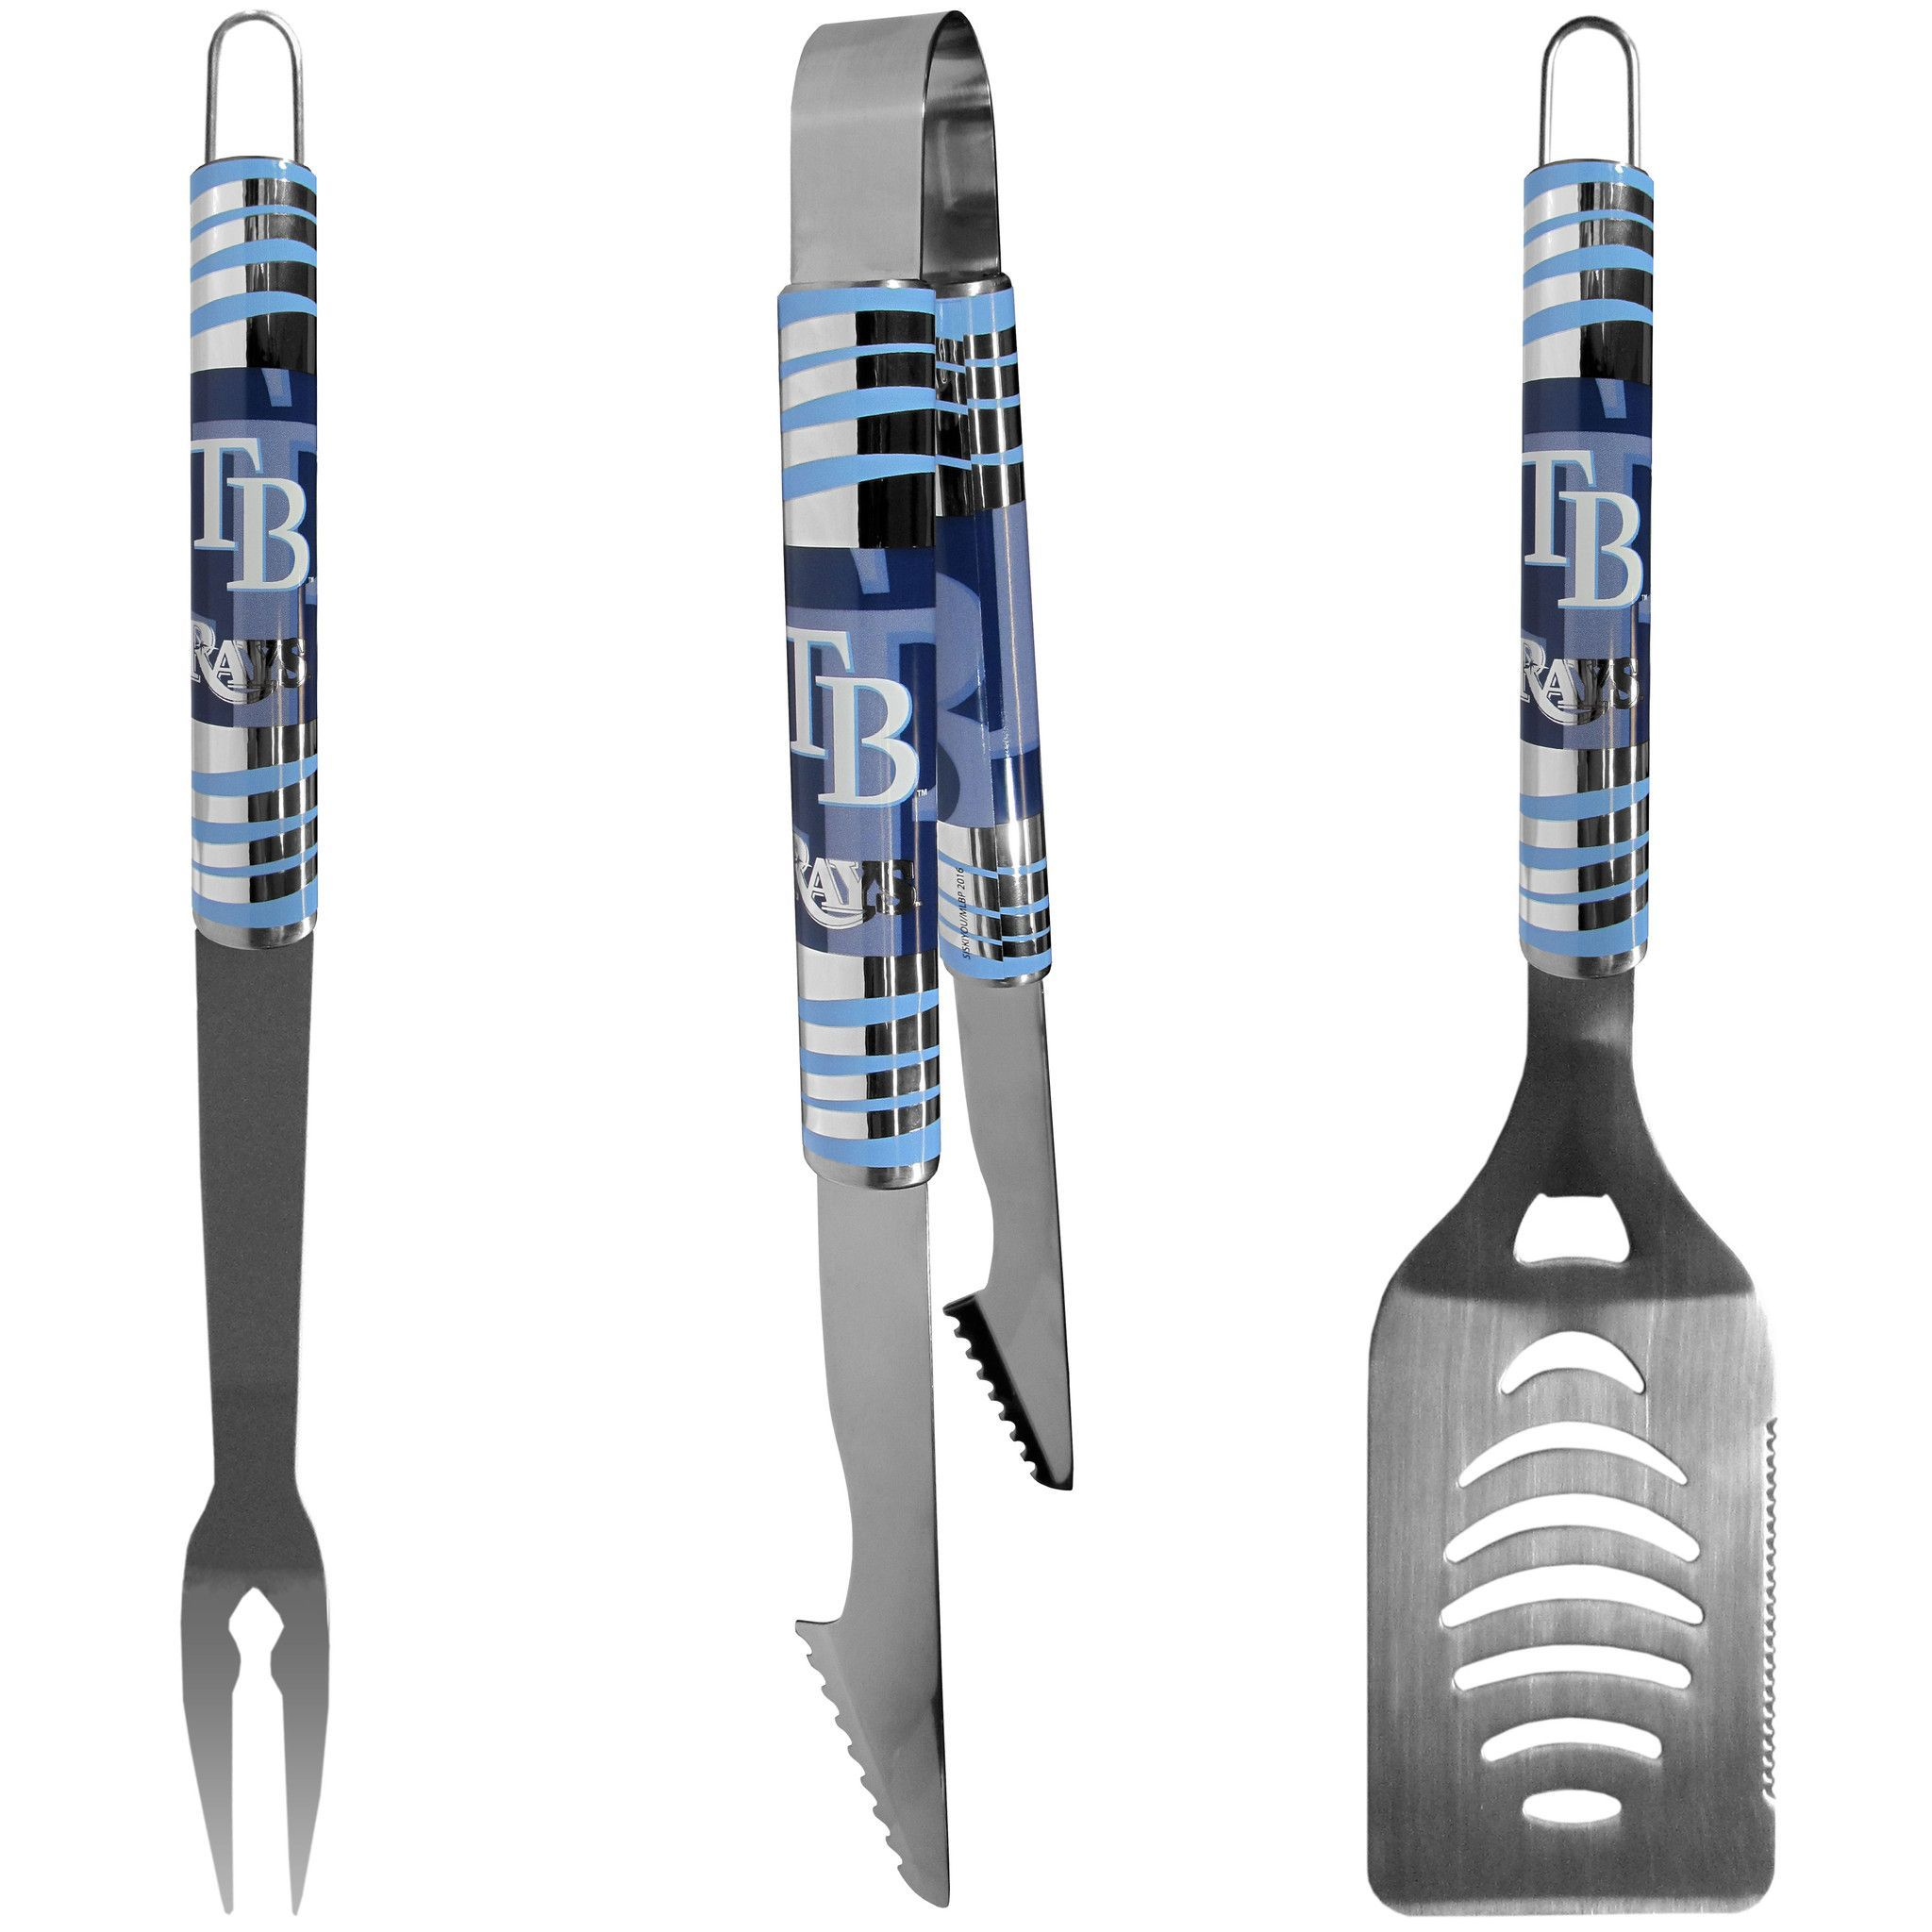 Tampa Bay Rays 3 pc Tailgater BBQ Set